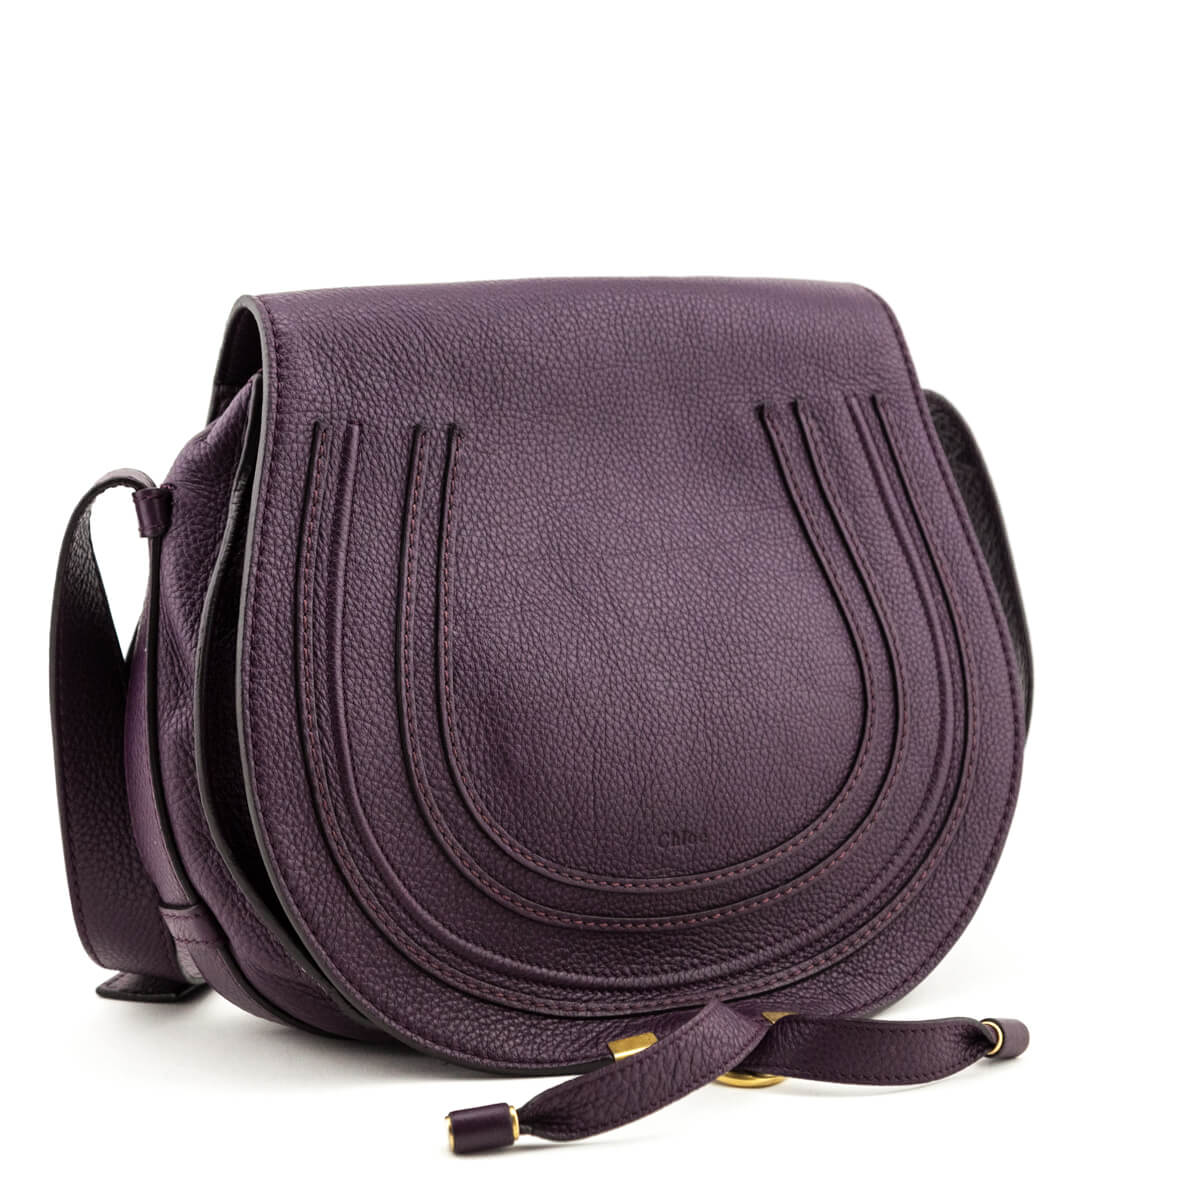 special promotion enjoy big discount top-rated quality Chloe Grape Pebbled Calfskin Medium Marcie Crossbody